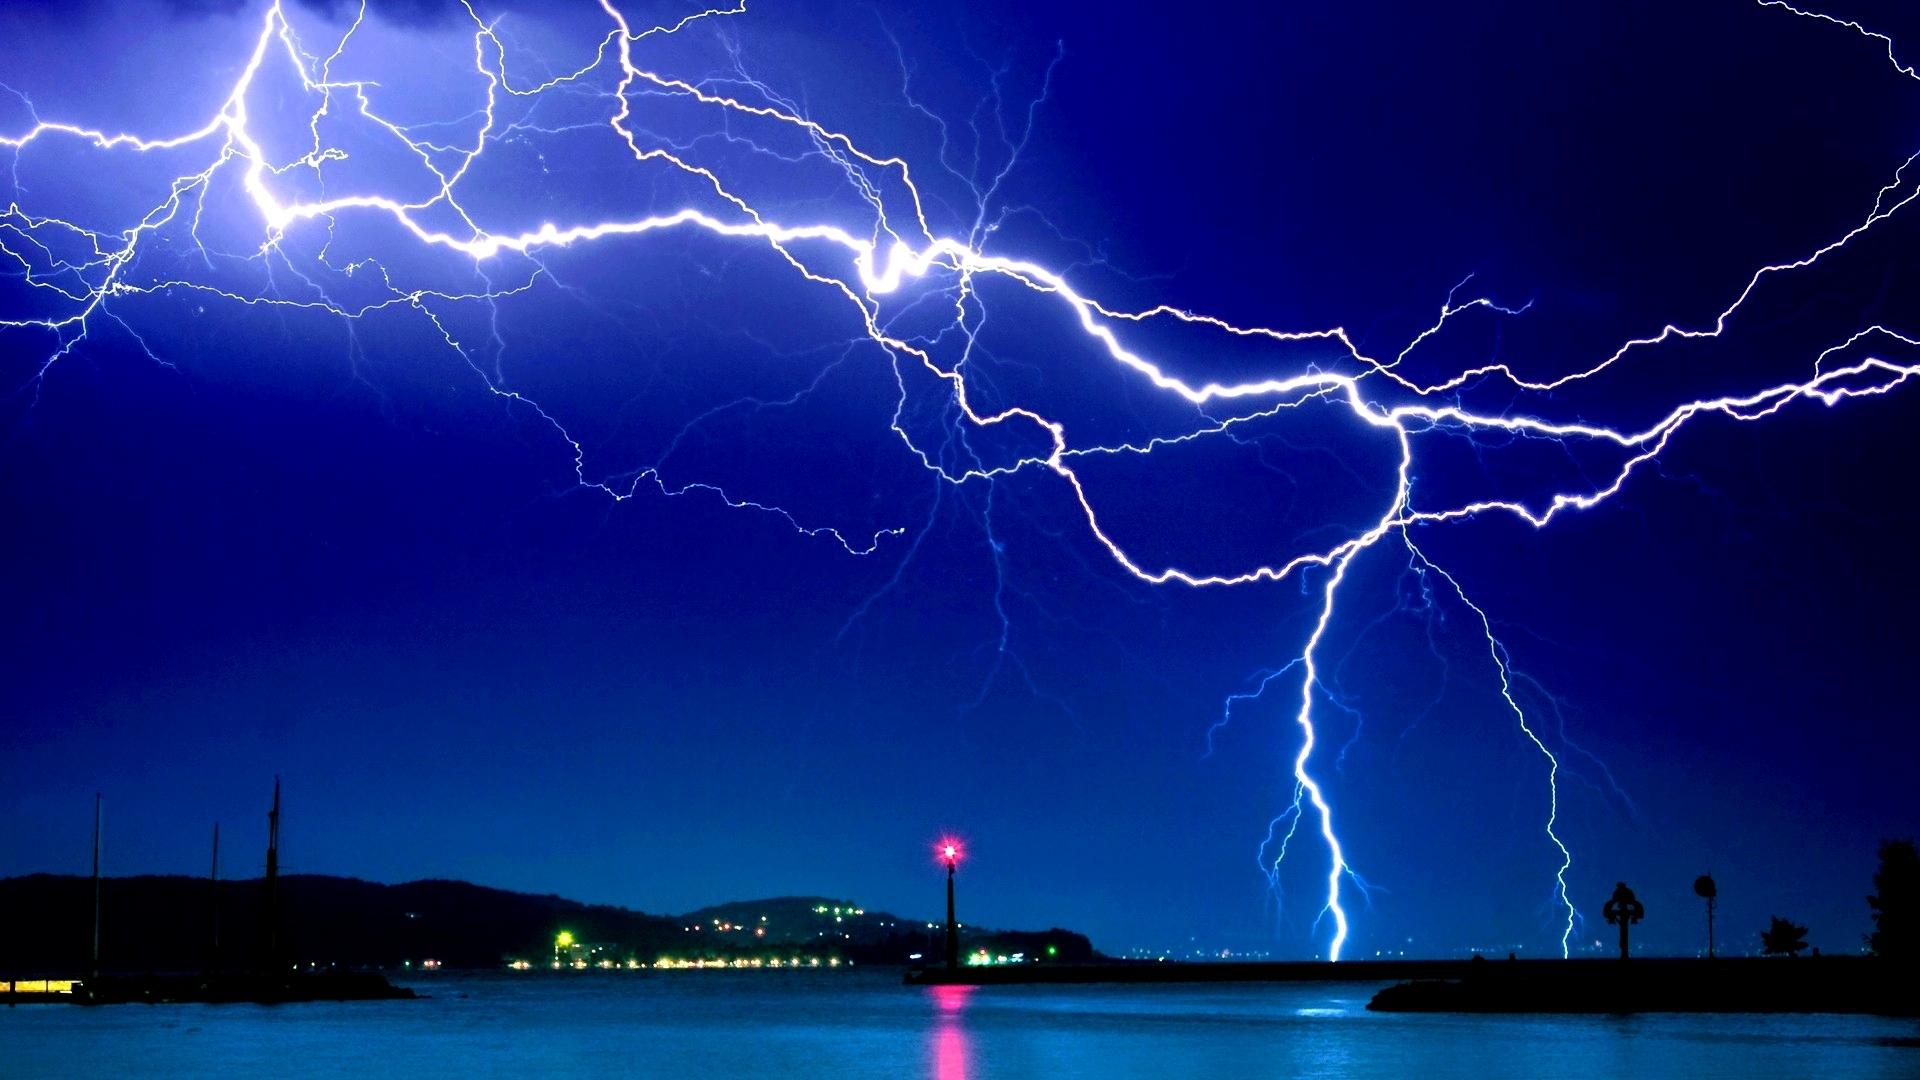 lightning full hd quality wallpapers, 46+ widescreen wallpapers